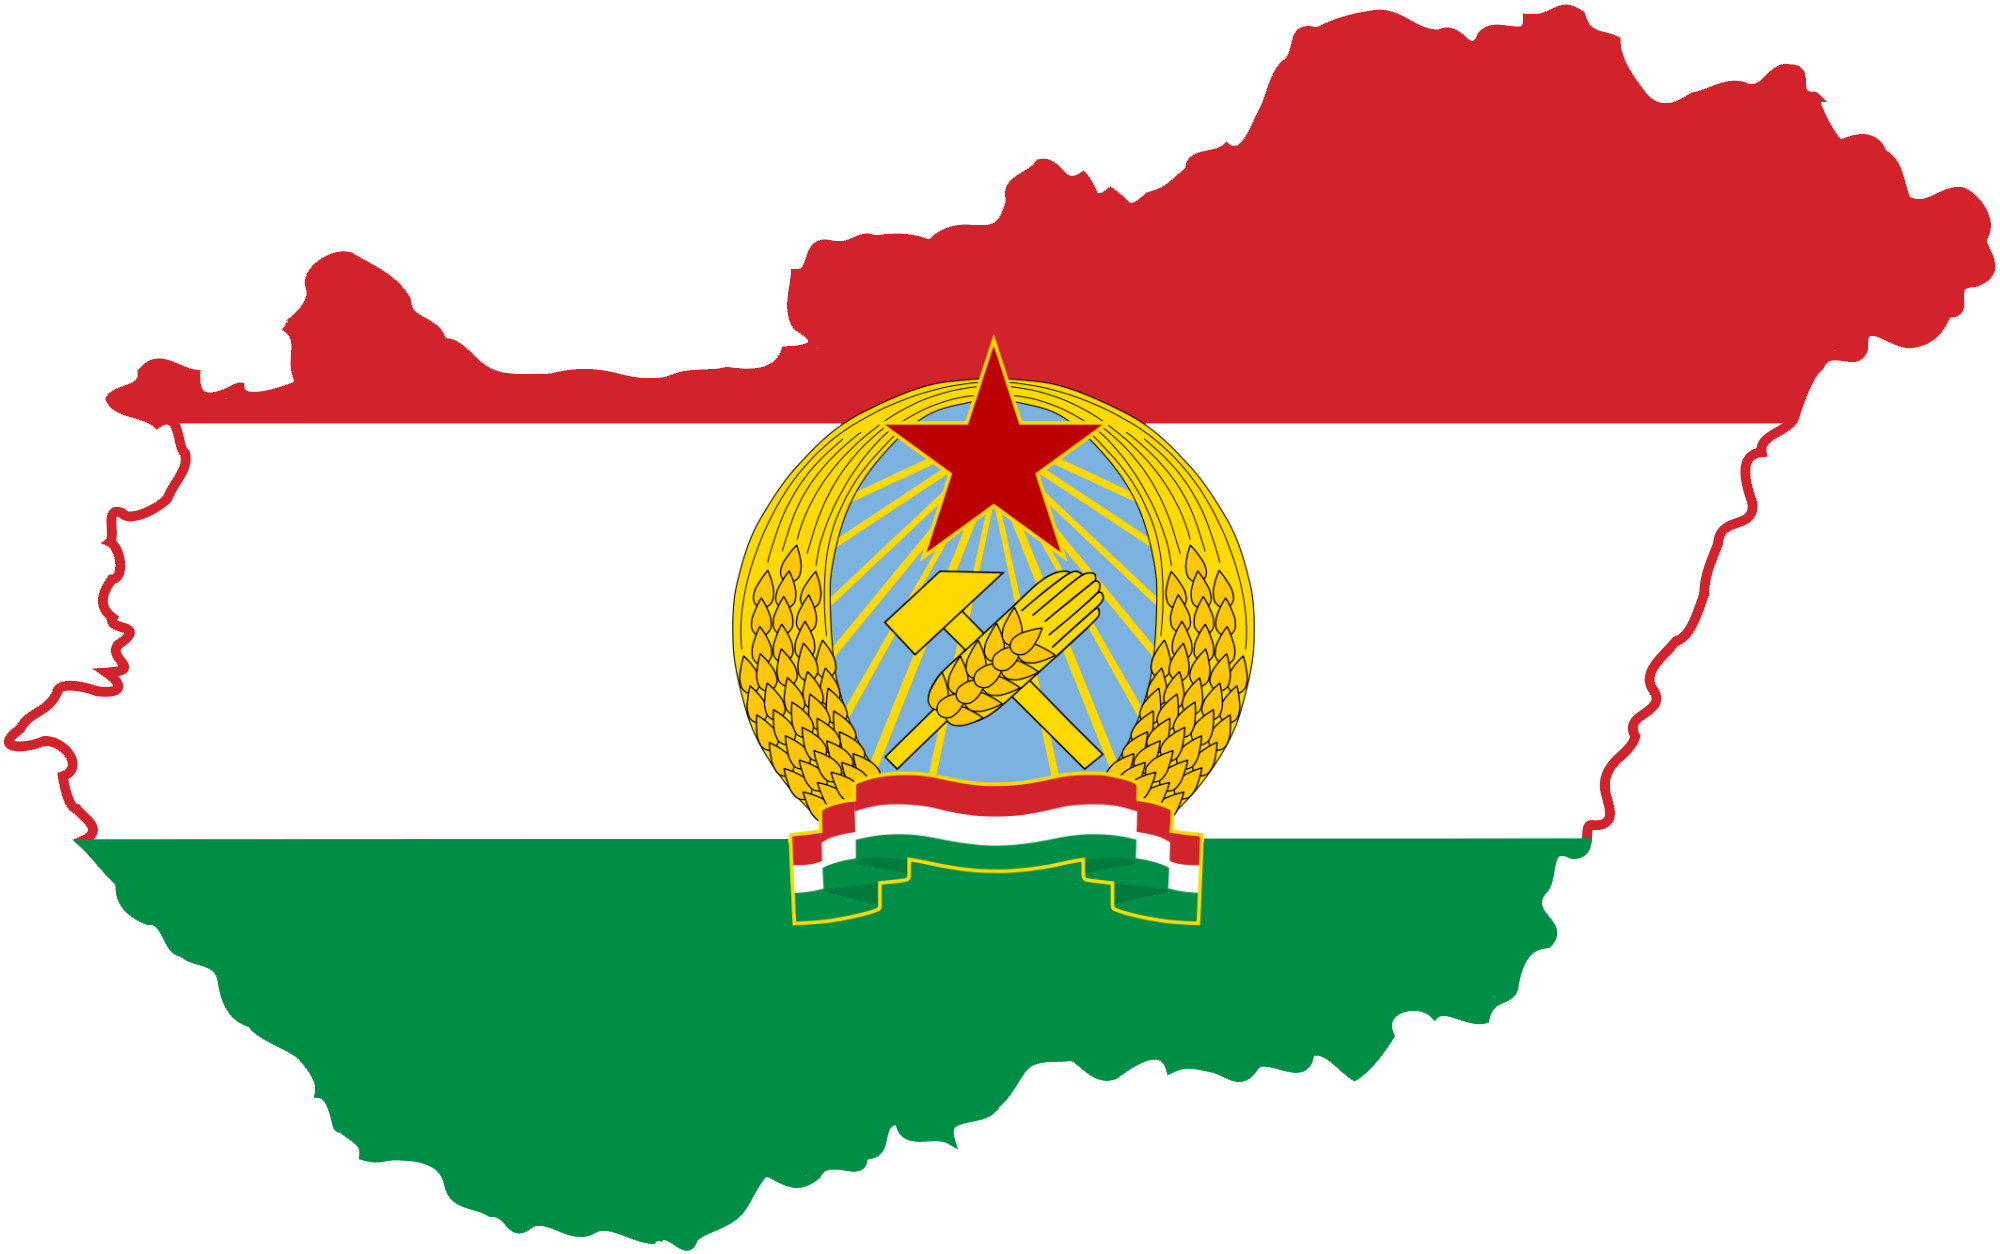 File:Flag-map of Peopleu0027s Republic of Hungary.png - Hungary PNG